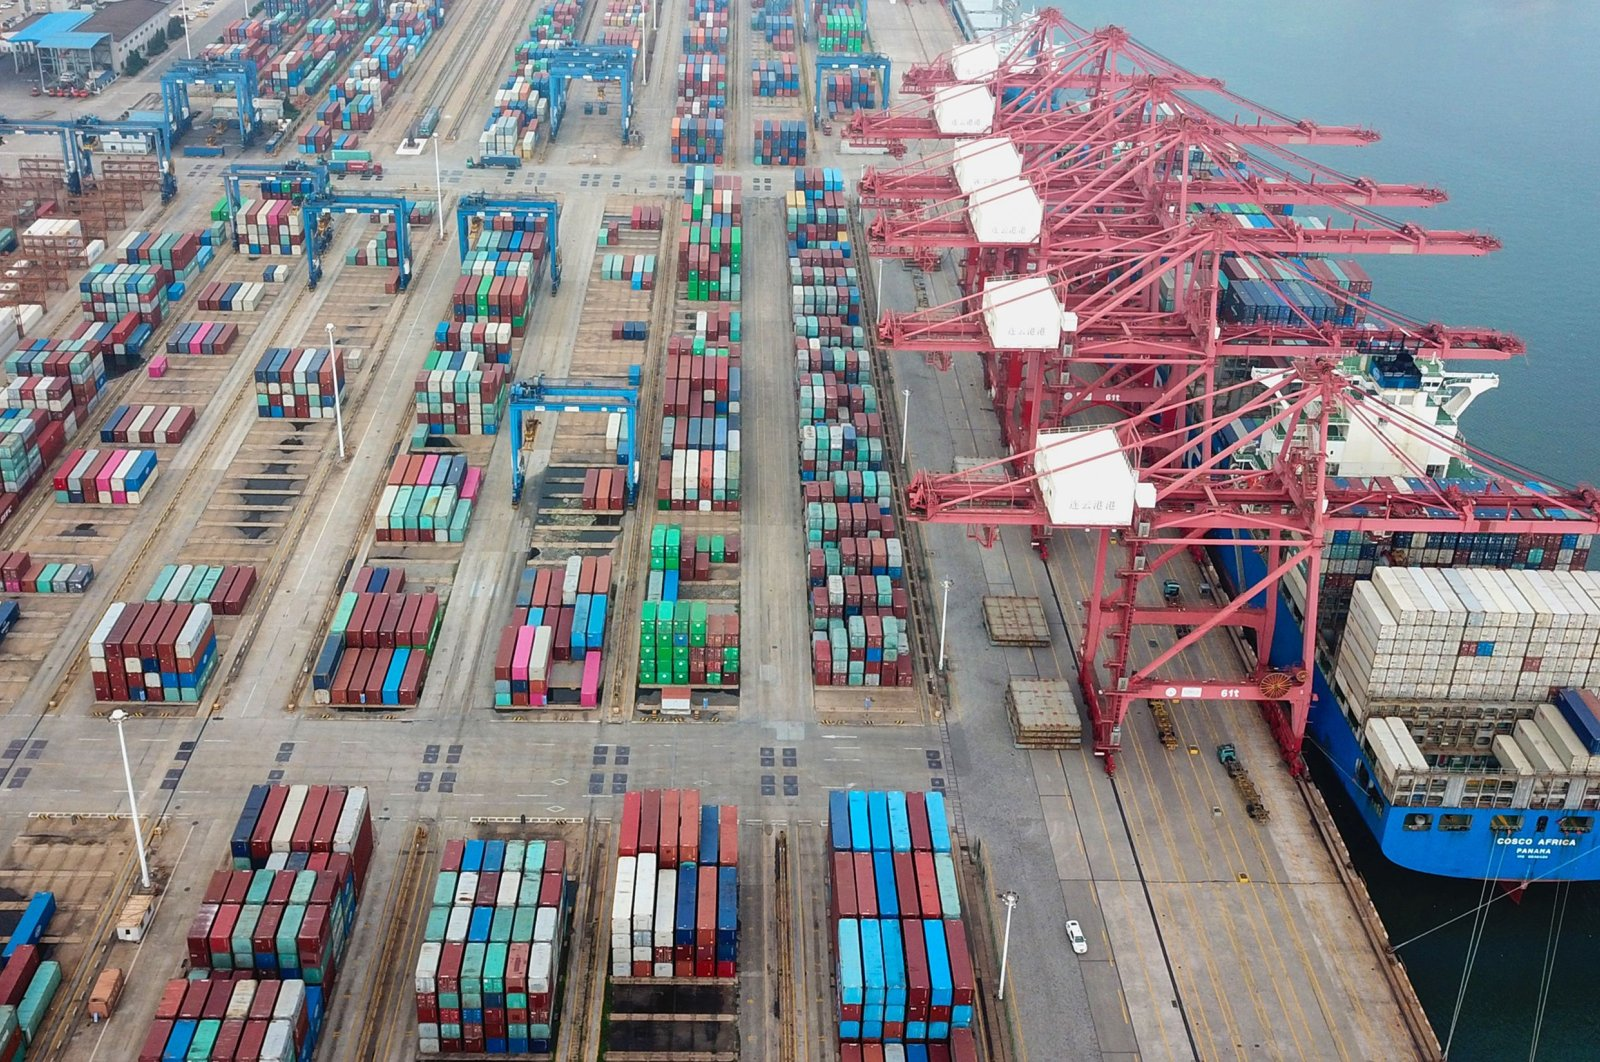 Containers stacked at a port in Lianyungang in China's eastern Jiangsu province, July 14, 2020. (AFP Photo)